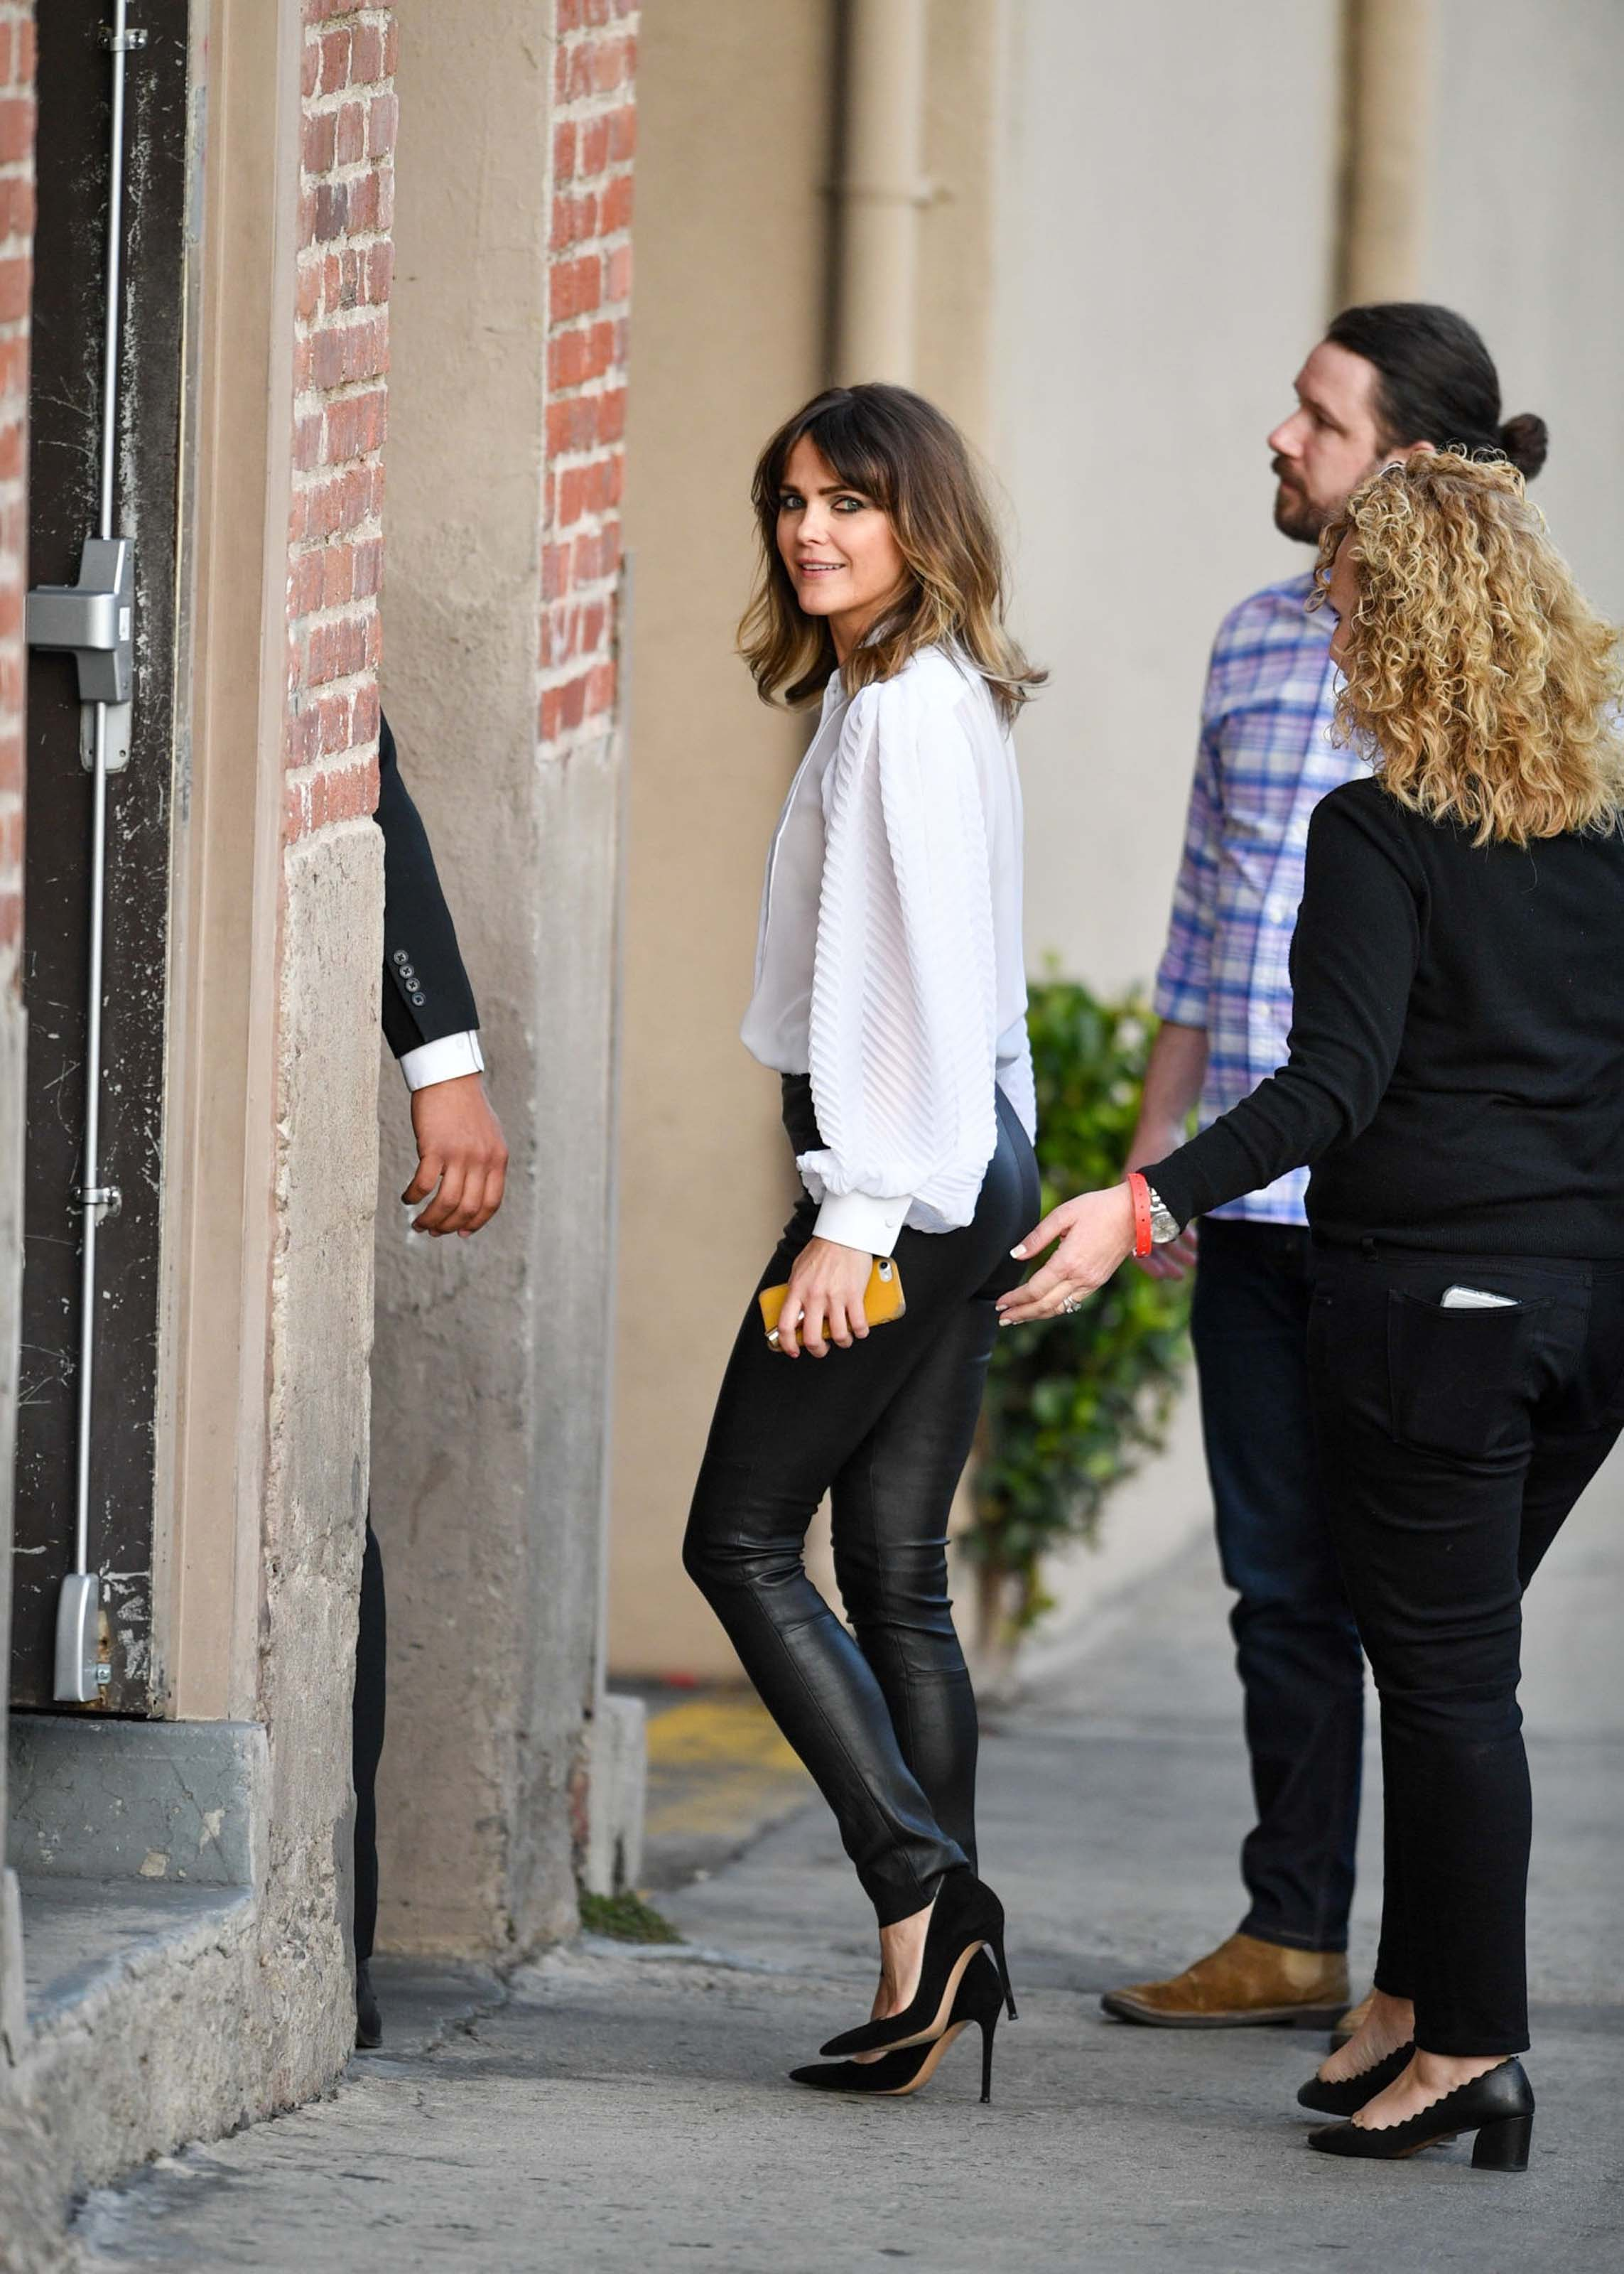 Keri Russell arriving at the Jimmy Kimmel Live